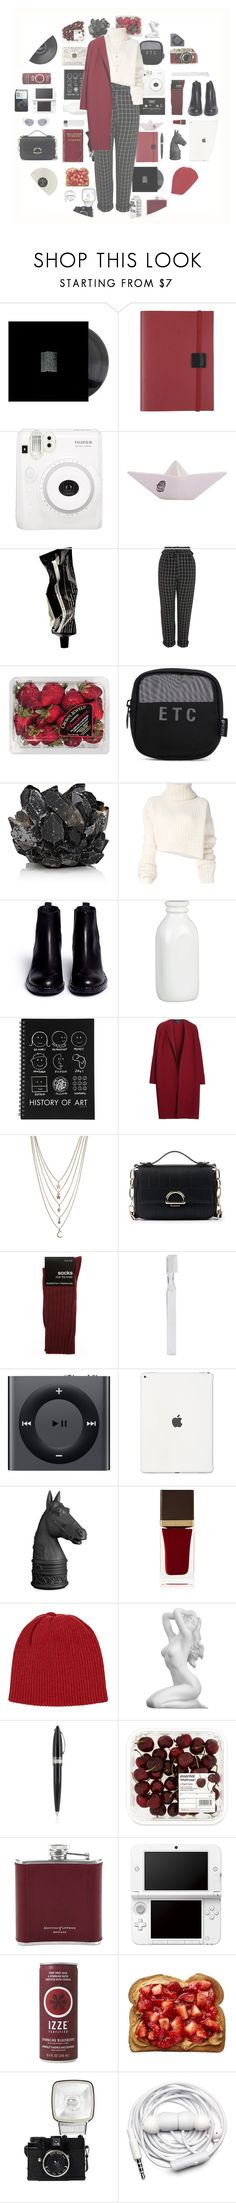 """"""".267"""" by sweet-sour-98 ❤ liked on Polyvore featuring Undercover, Fuji, NOVICA, CASSETTE, Aesop, Topshop, FRUIT, WithChic, McCoy Design and Ann Demeulemeester"""